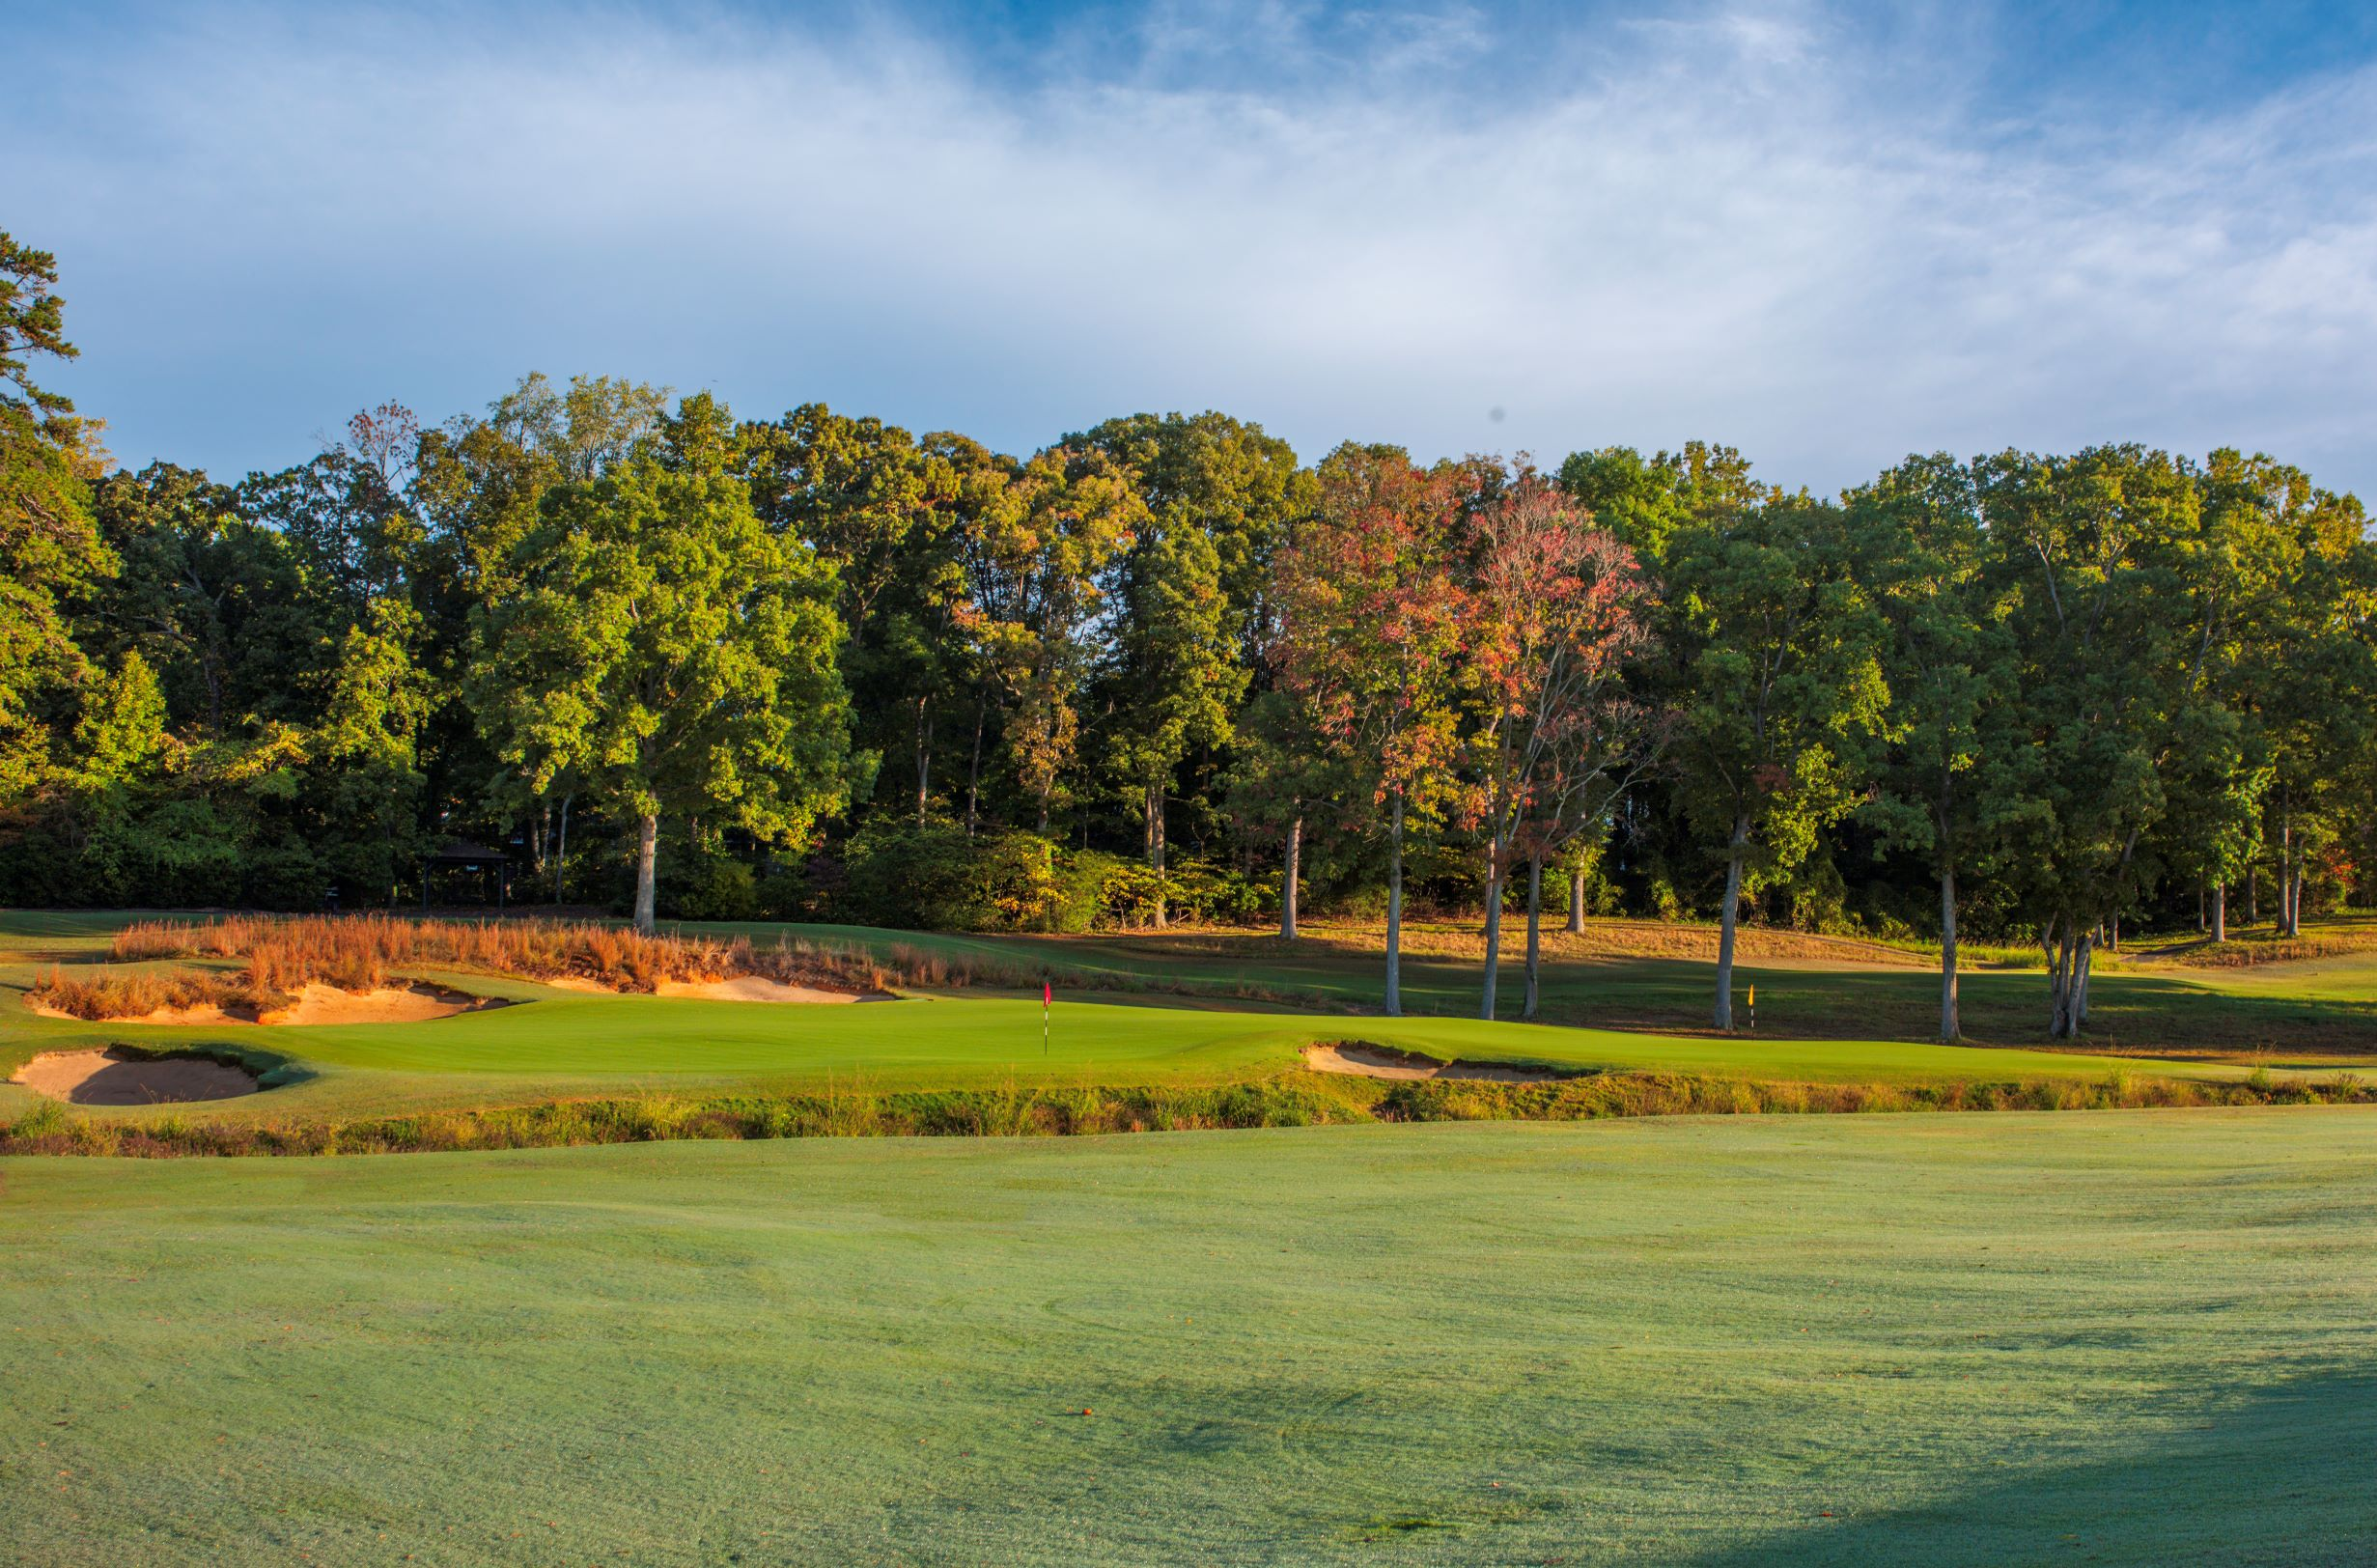 The autumn colors, broomsedge grass, jagged bunkers and Silas Creek frame the double-green at Old Town Club, the red flag on the left the eighth hole and the yellow the seventeenth. (Larry Lambrecht).